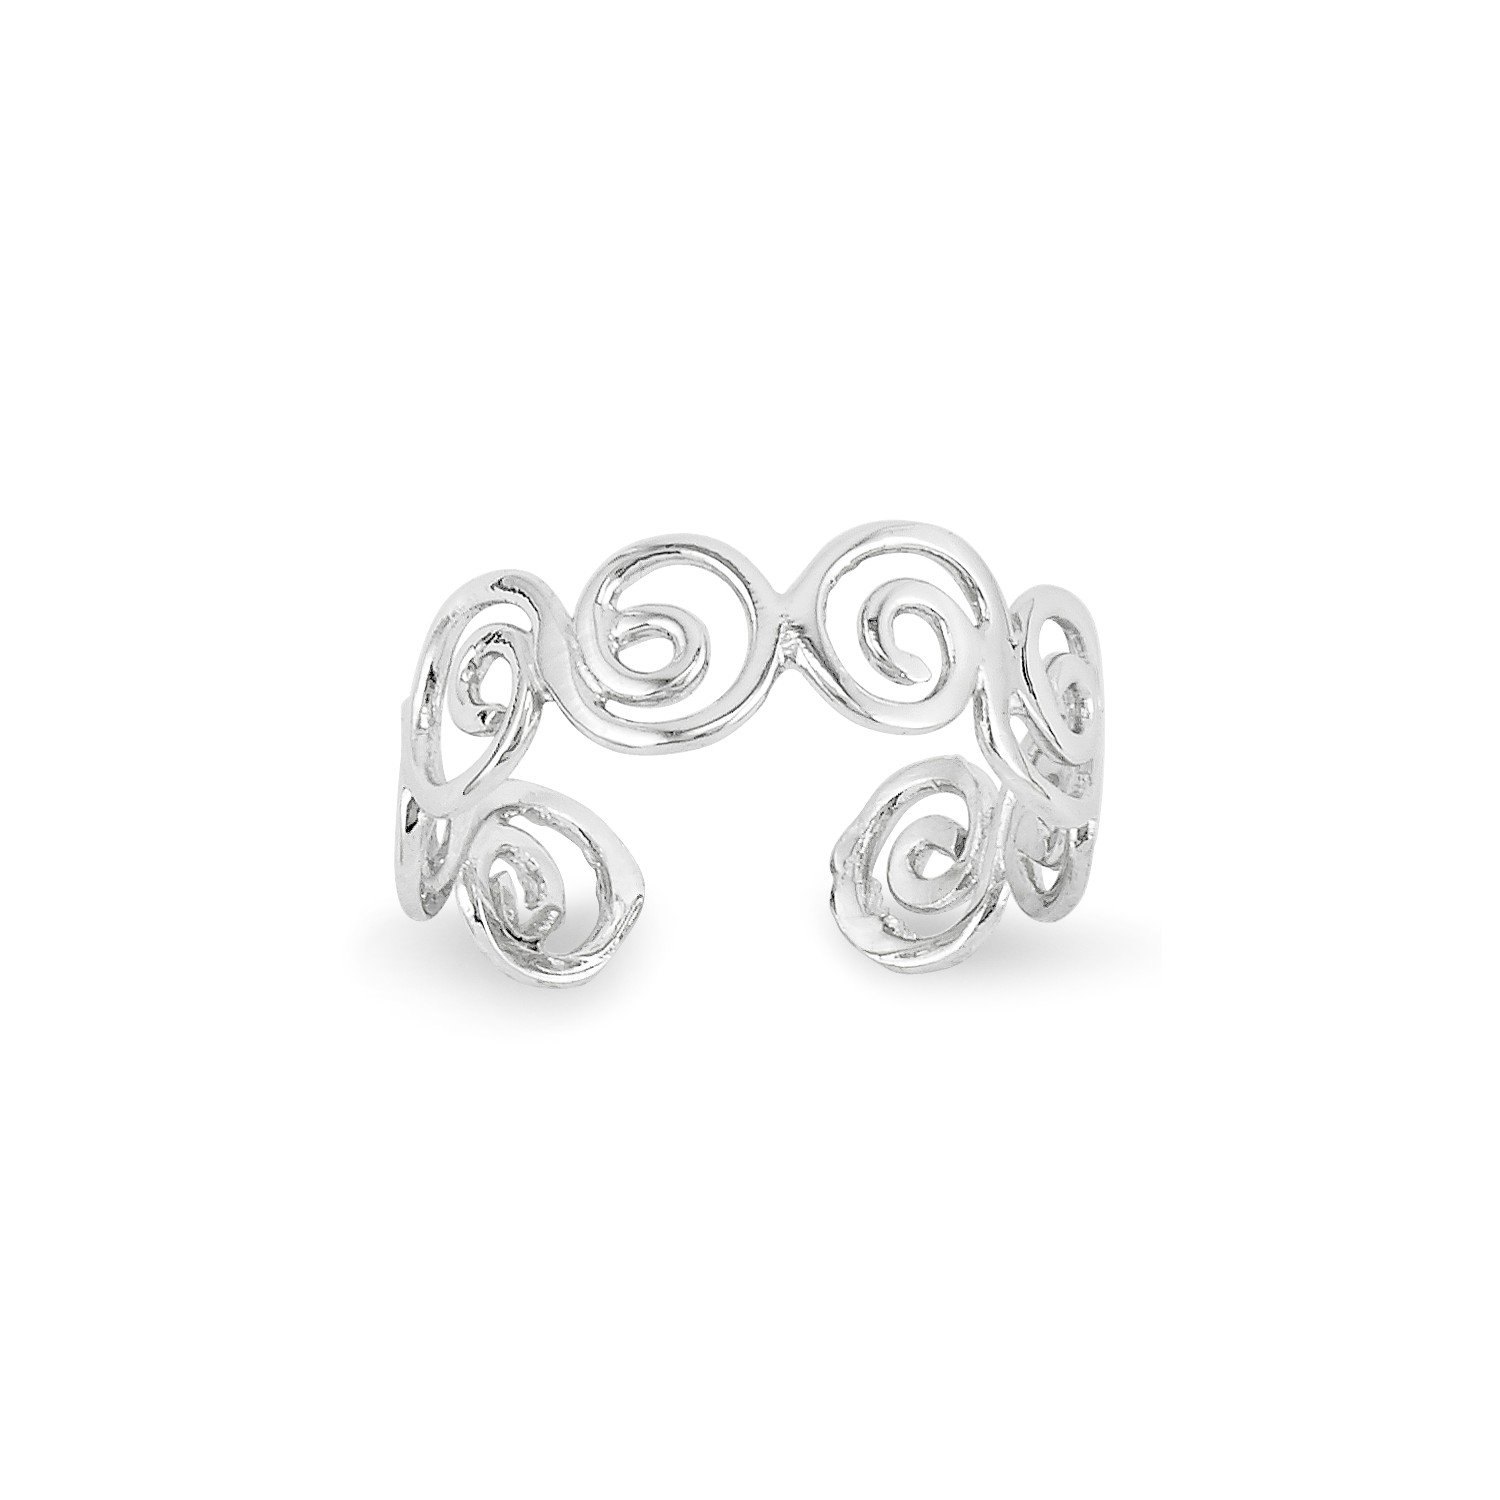 Roy Rose Jewelry 14K White Gold Swirl Toe Ring QG Mfg 137-868